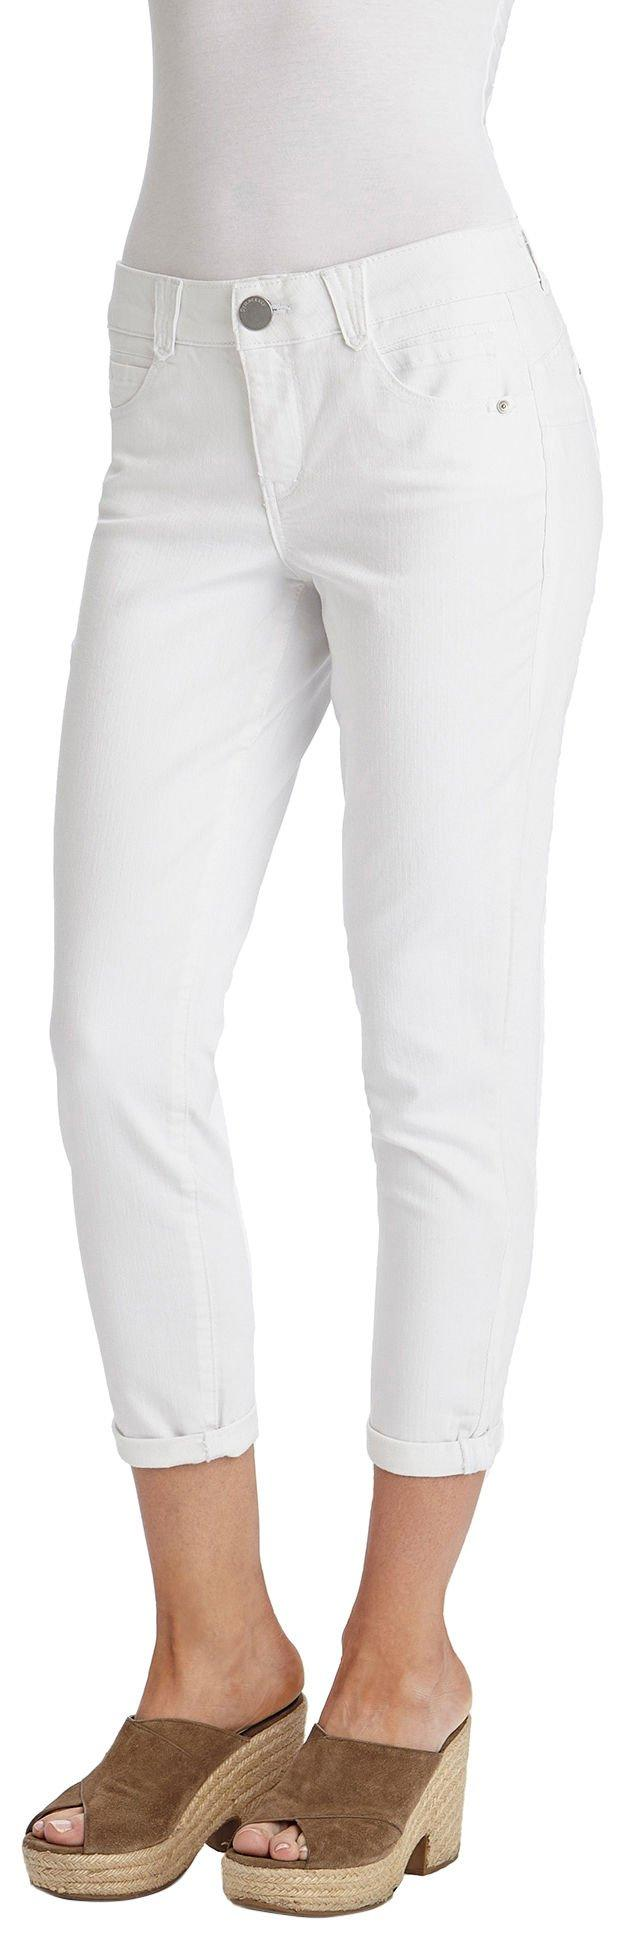 M&s Collection Tapered Crop Trousers Size 18 Short New With Tags 4/5 Cheapest Price From Our Site